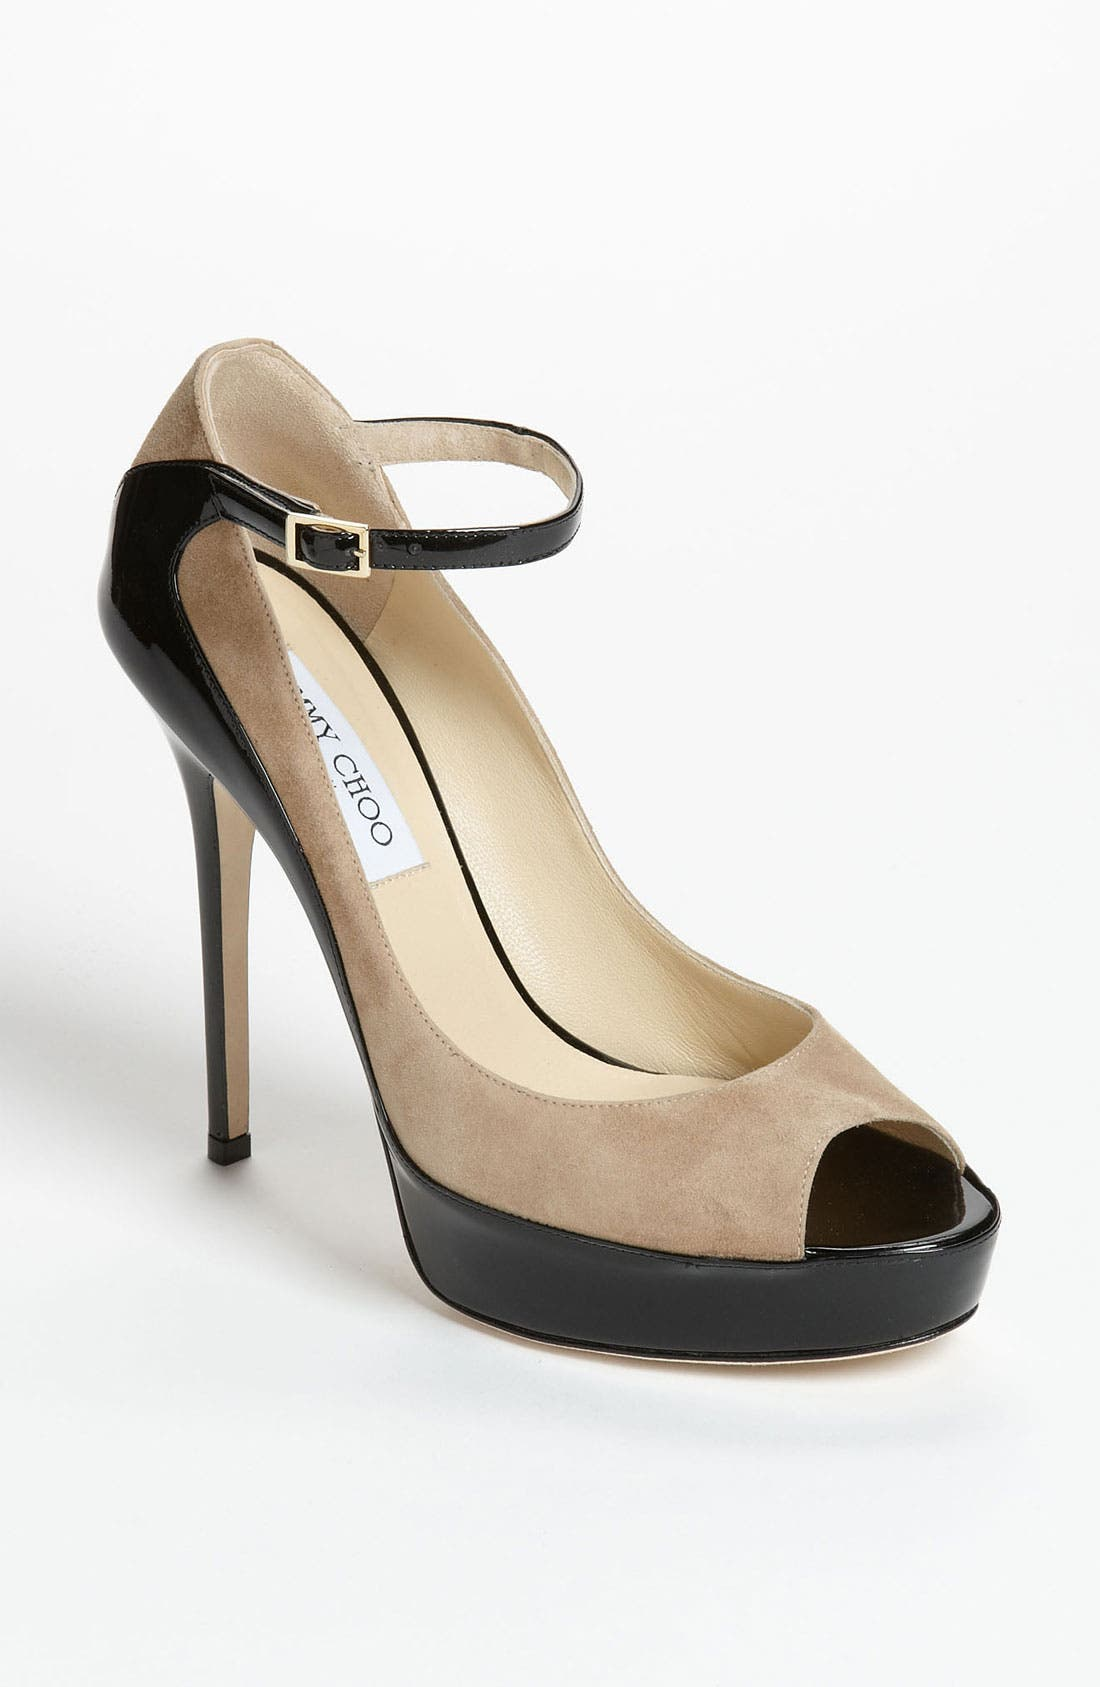 Alternate Image 1 Selected - Jimmy Choo 'Tami' Pump